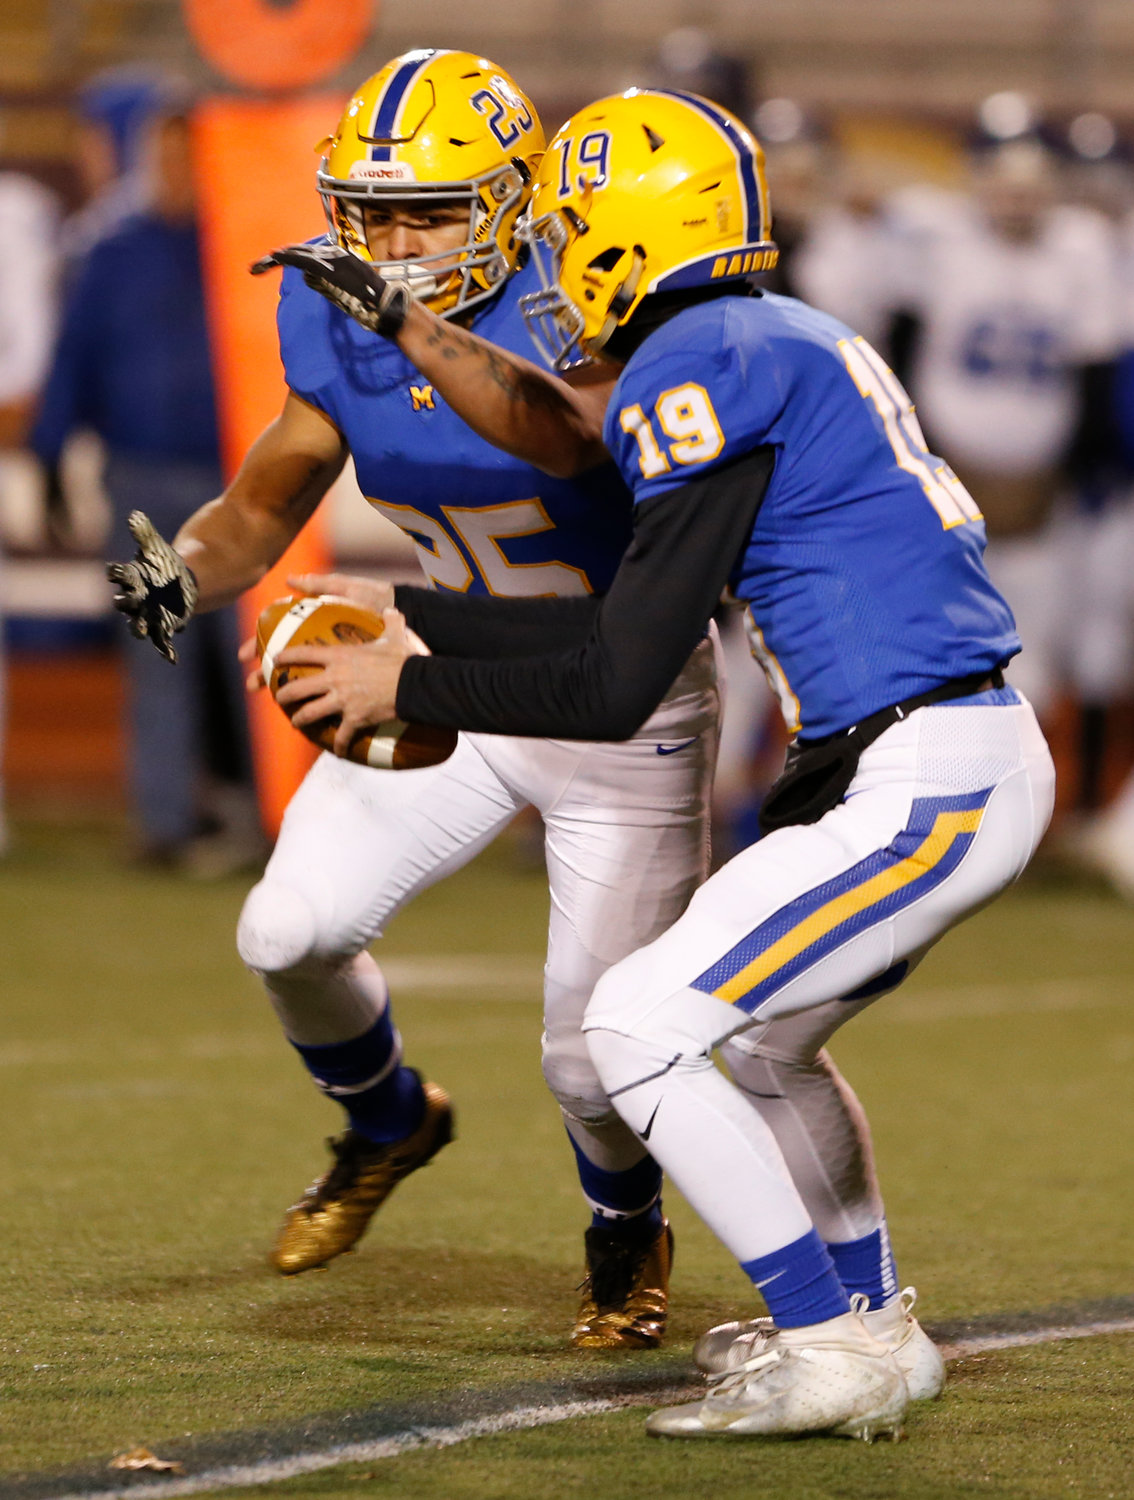 Scott Ash hands off the ball to Jose Lopez during Middletown's 21-14 win over Conwell-Egan at Milton Hershey High School in the PIAA 3A state quarterfinals Nov. 23.